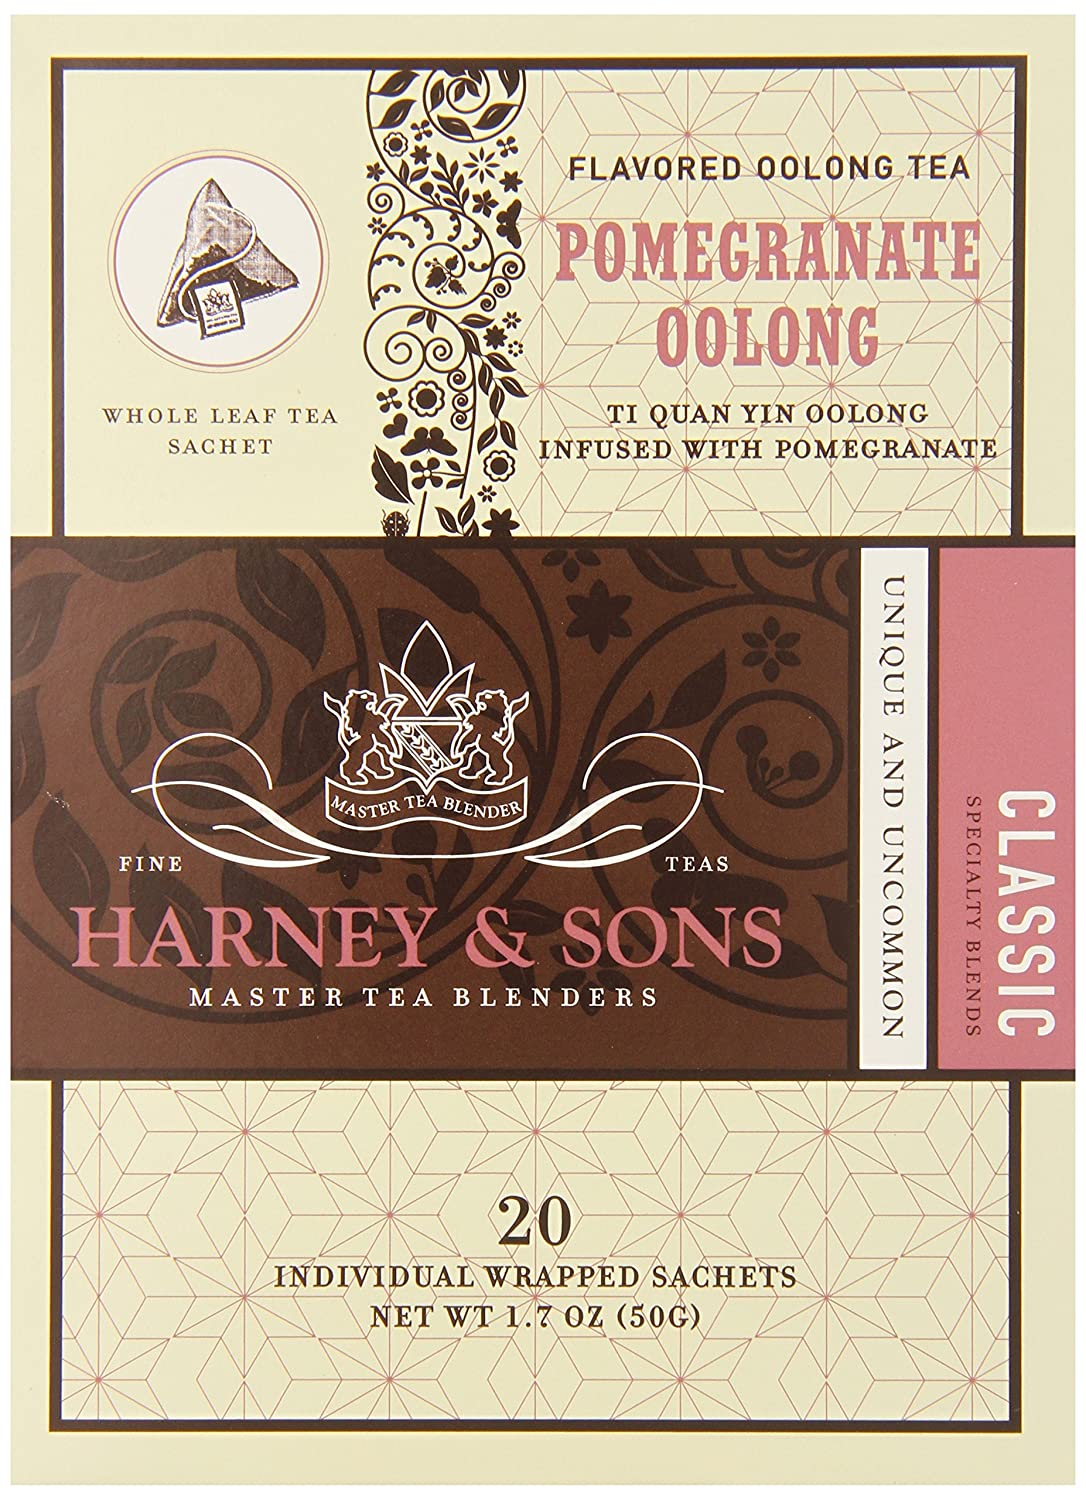 Harney and sons uk suppliers